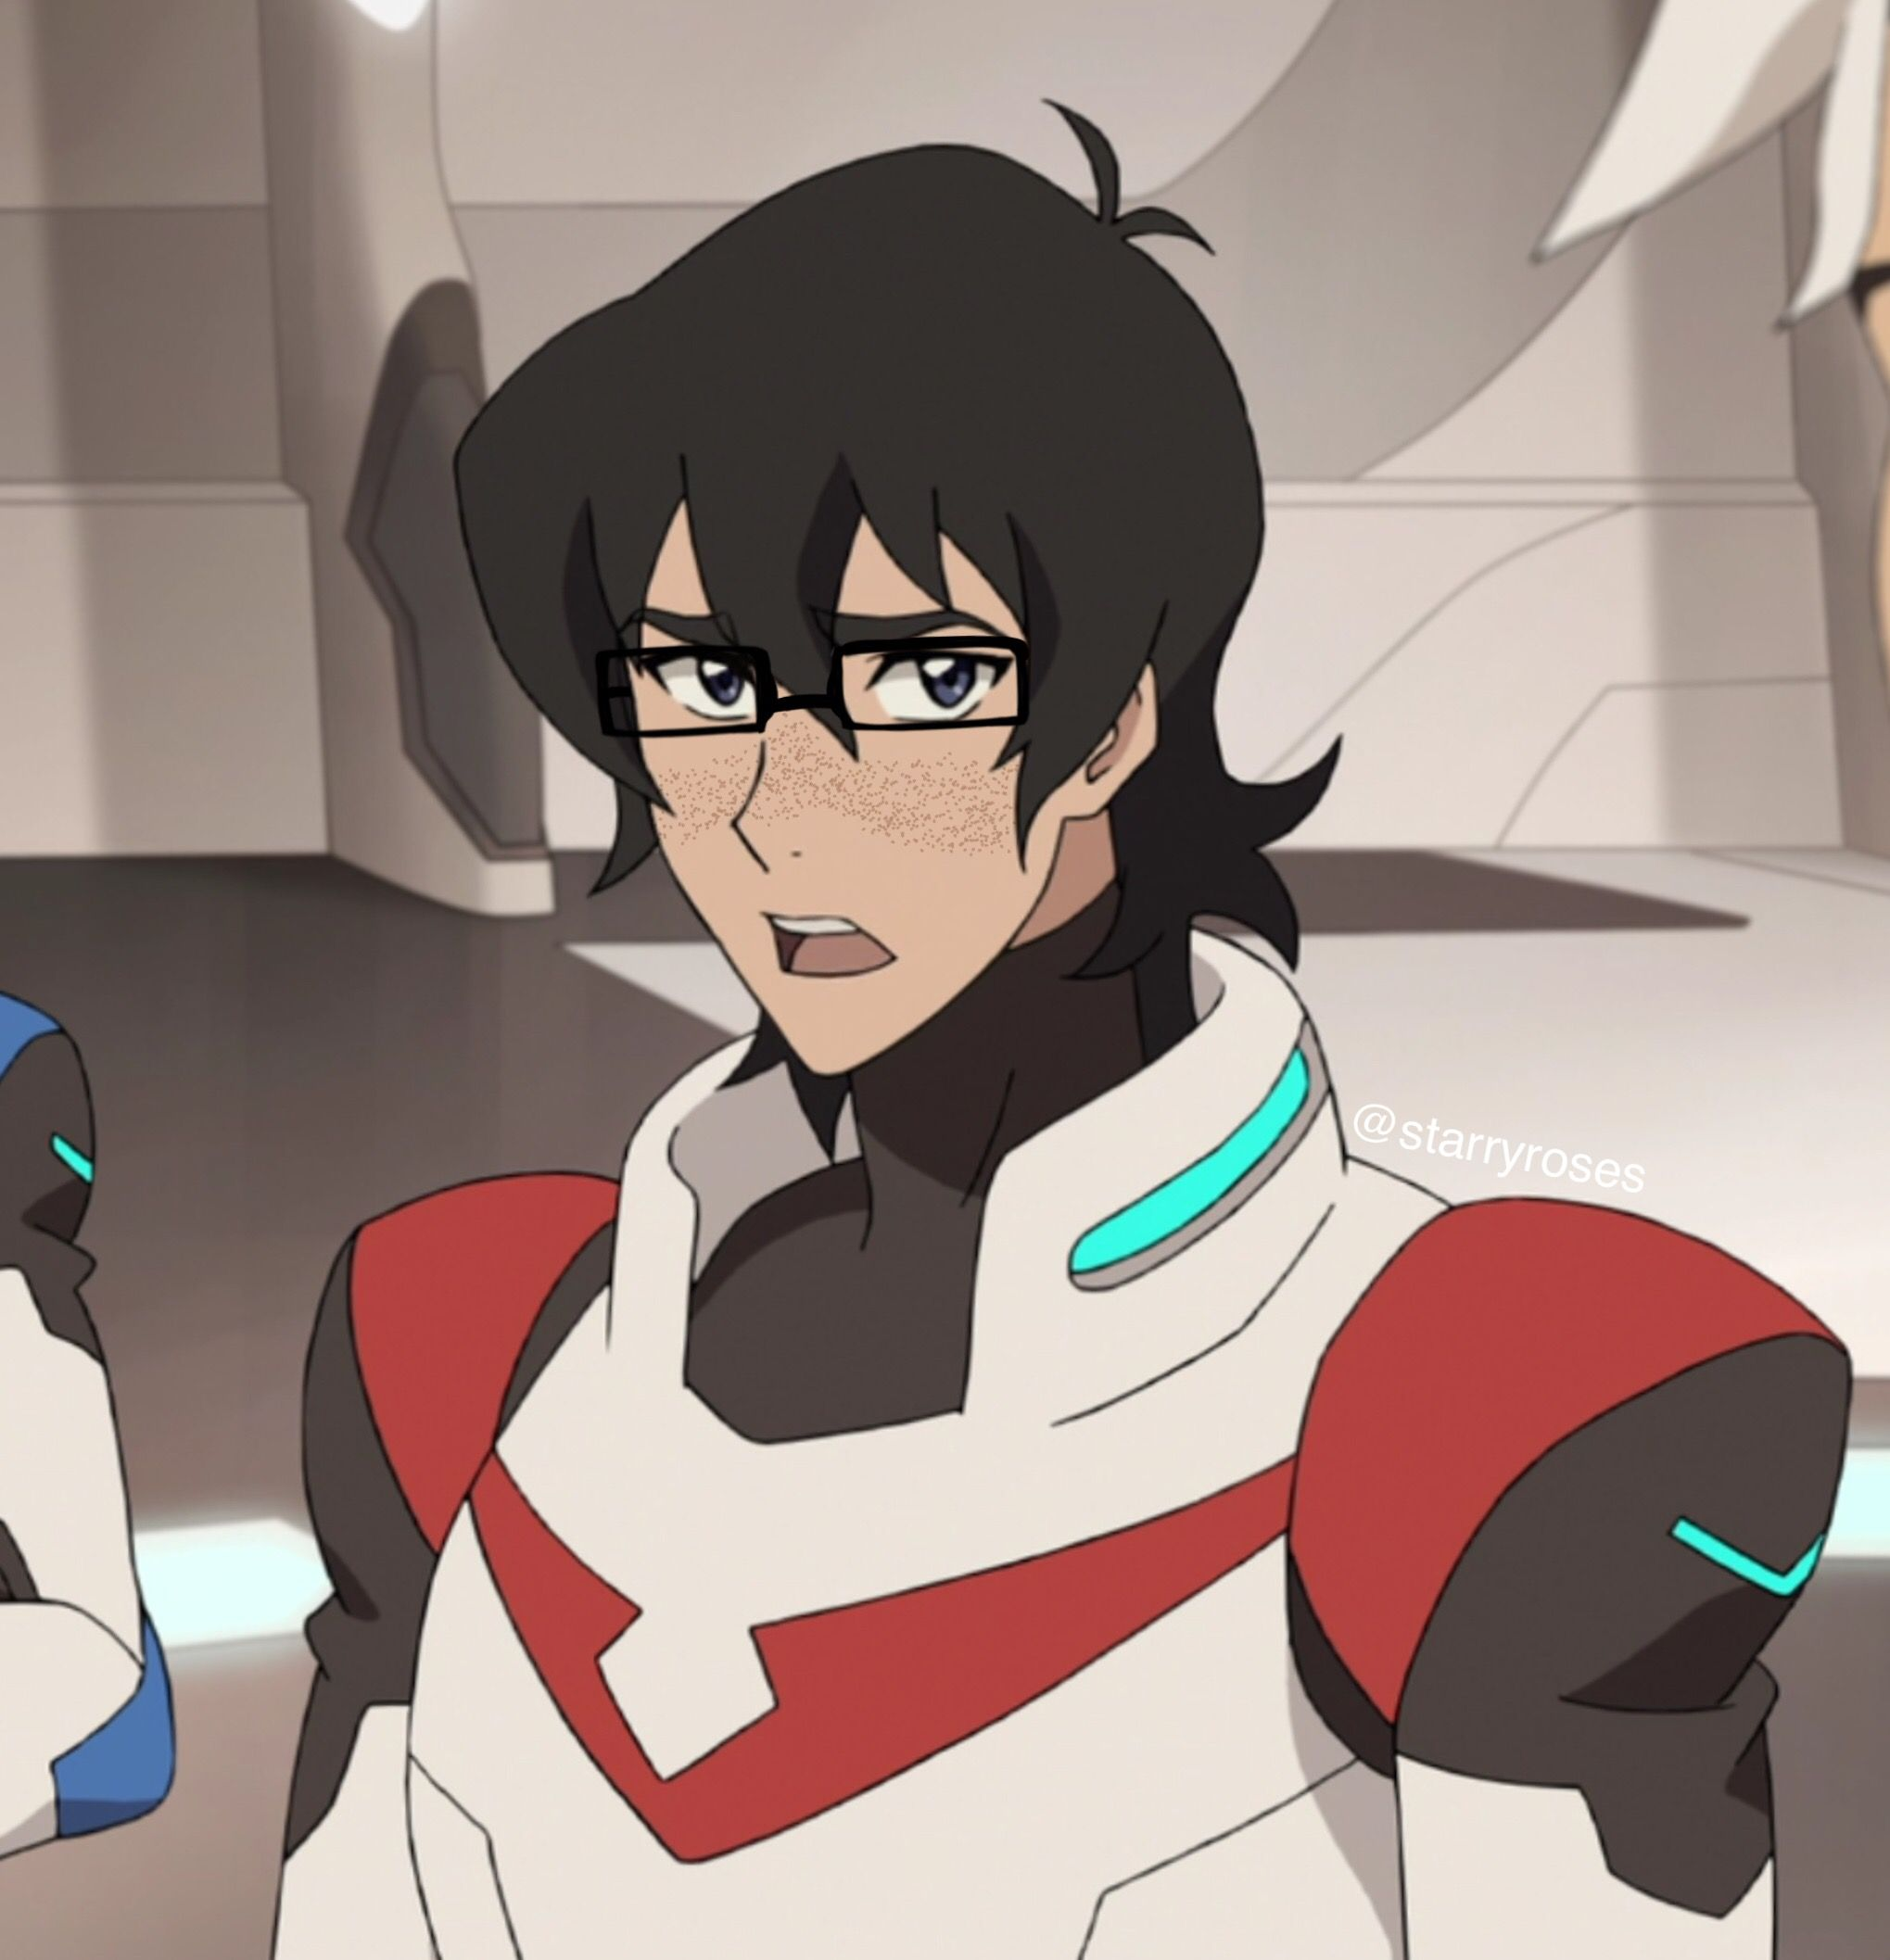 here's uuh,, keef with glasses and freckles, a concept,   80s voltron, Voltron, Voltron klance